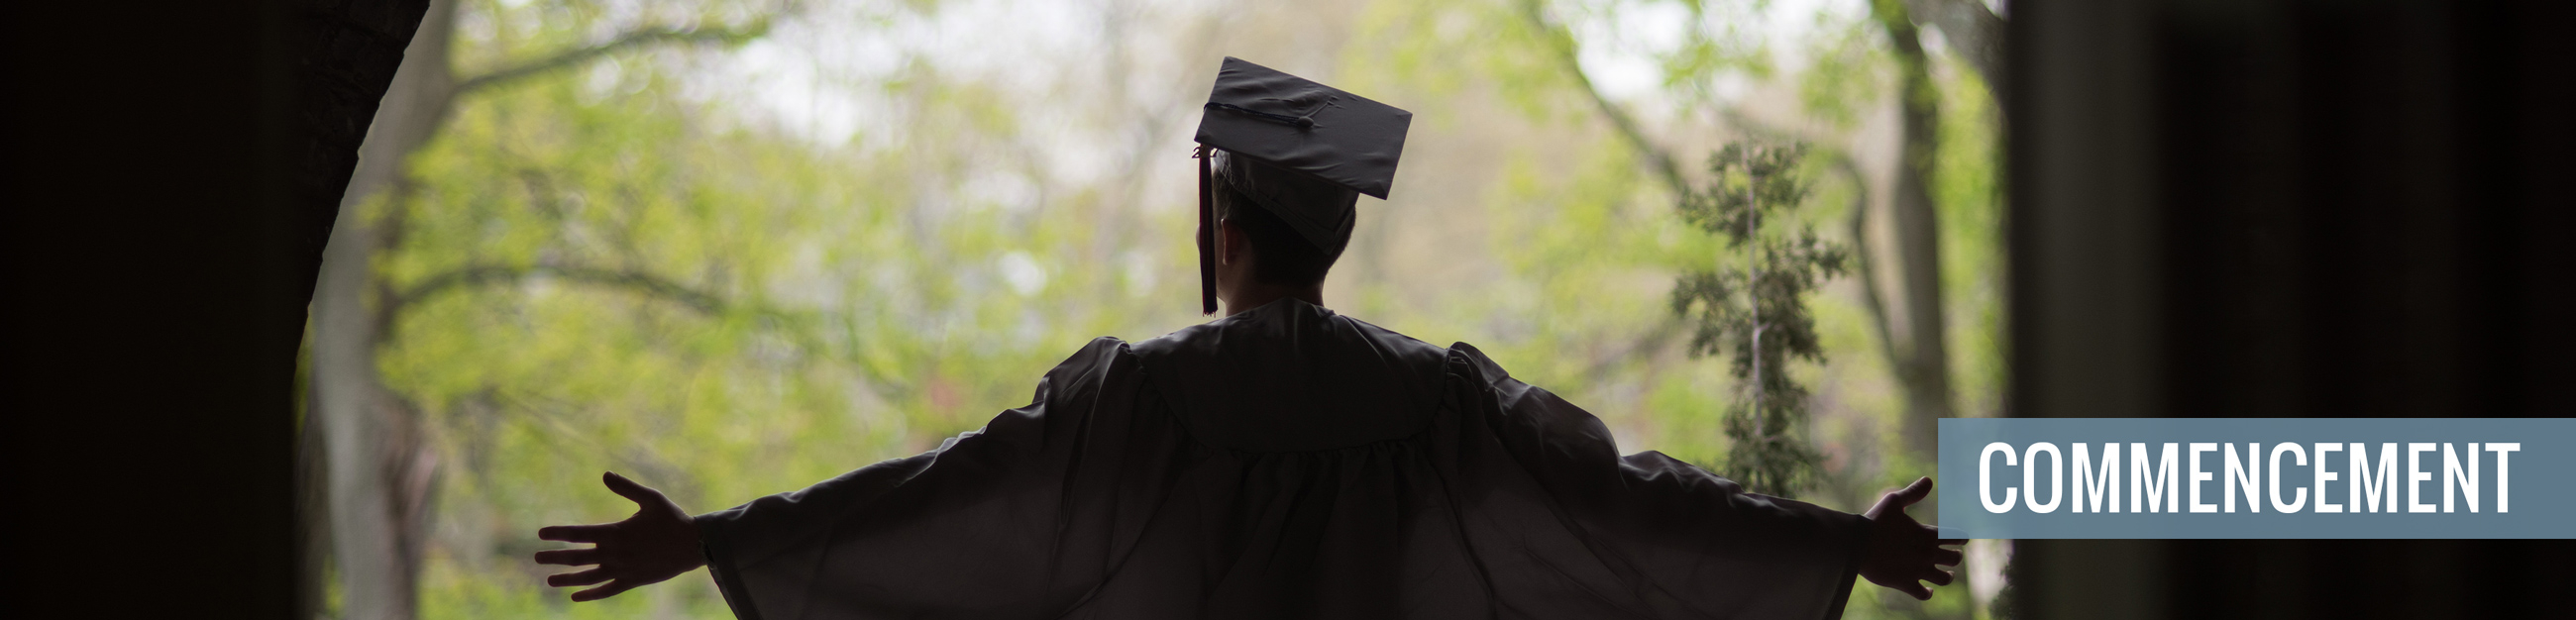 Commencement Intended For Nassau Community College Academic Calendar Spring 2020